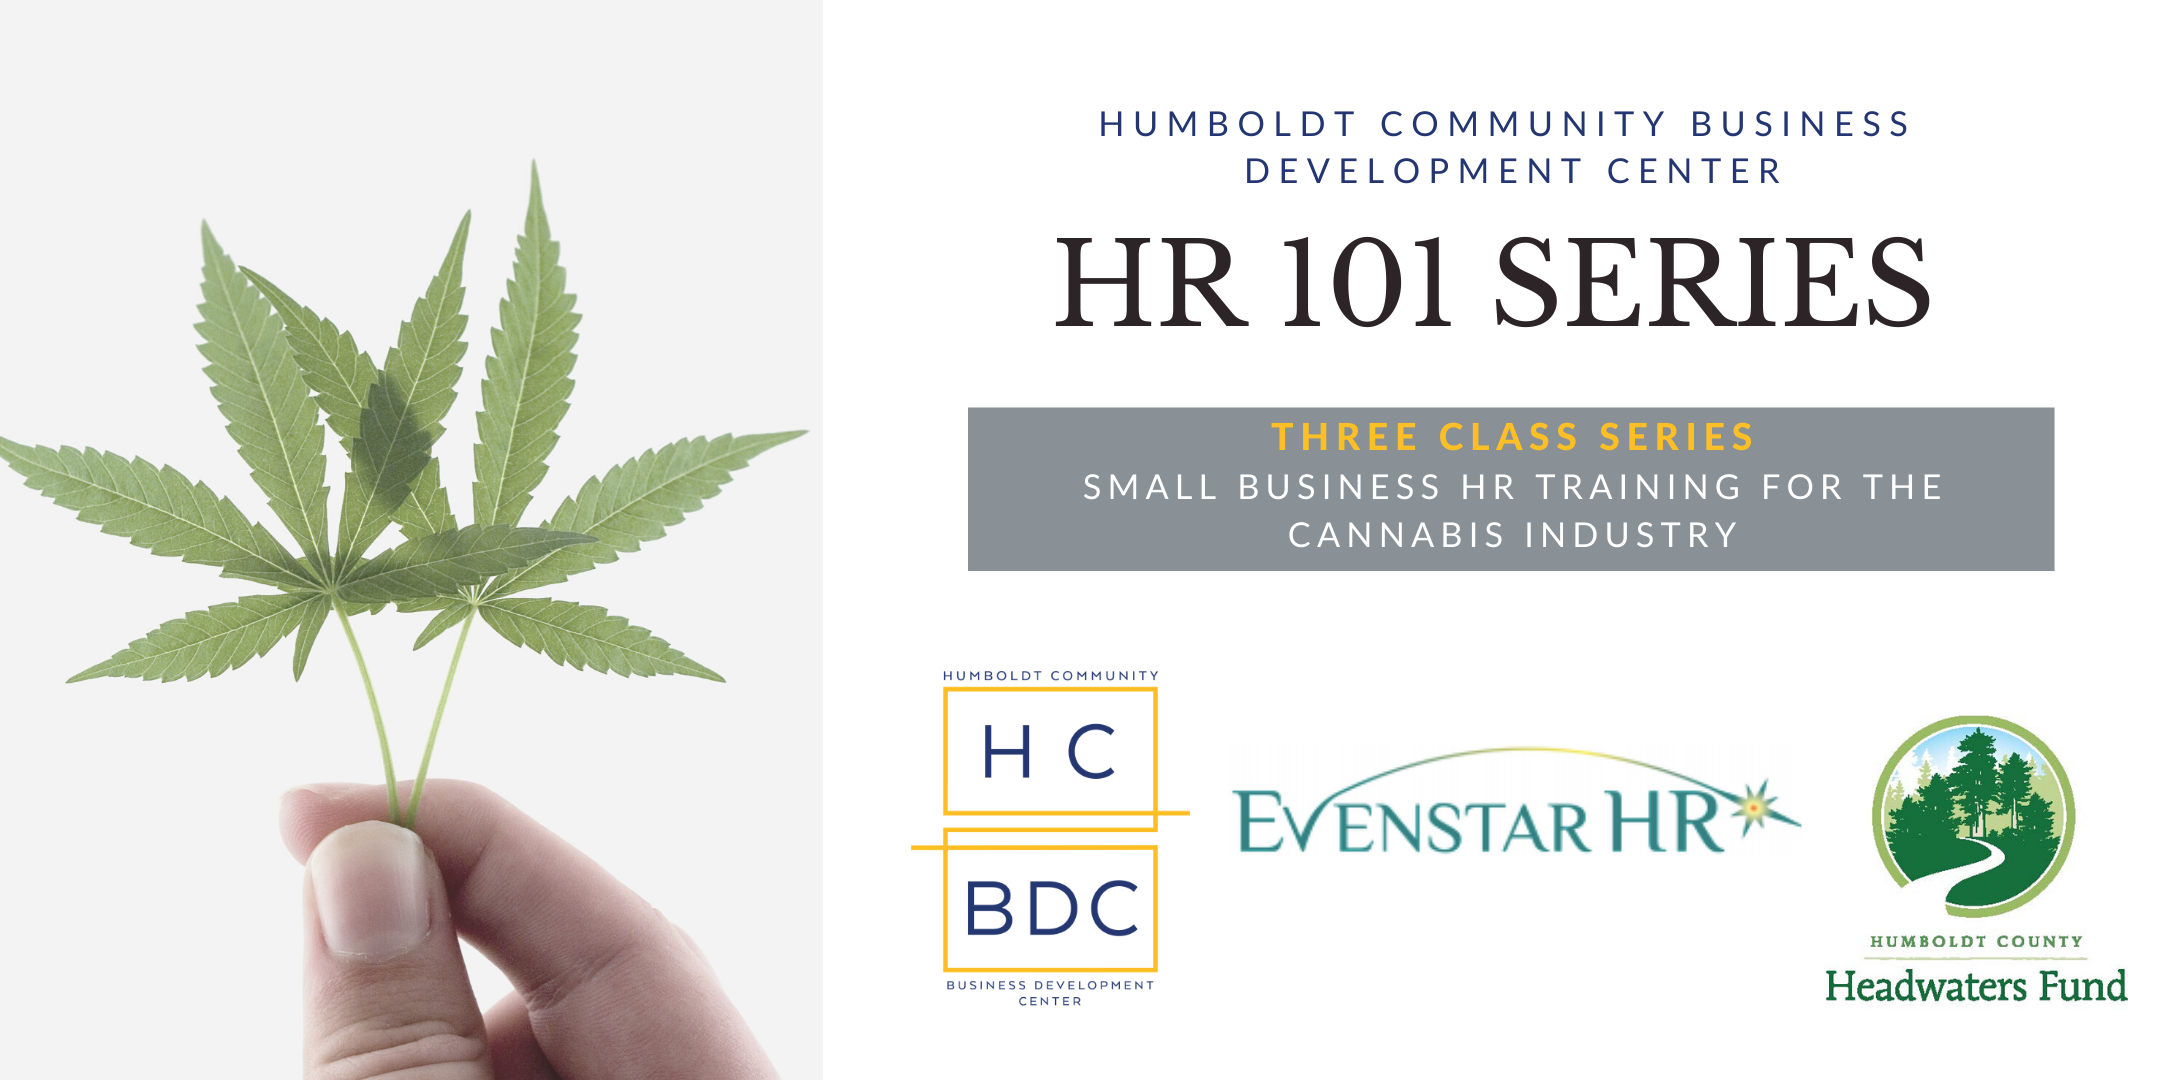 HCBDC - HR 101 Series ---------->Class 1: The Value of Human Resources